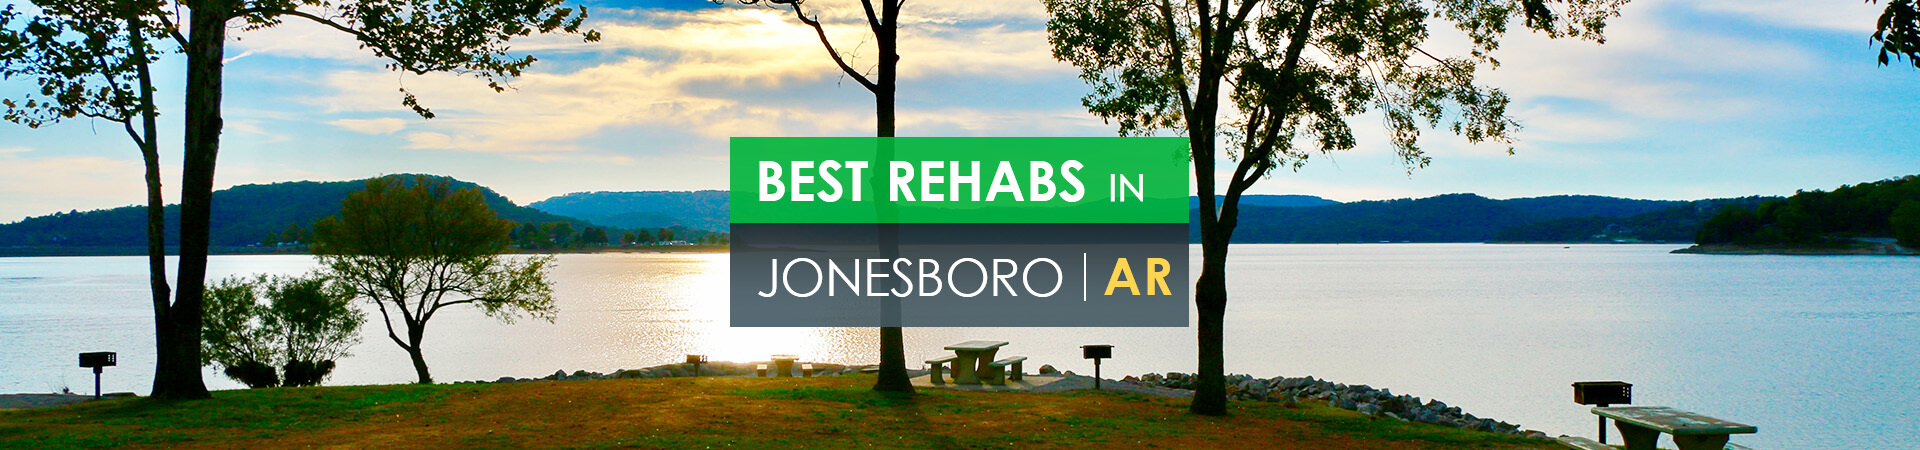 Best rehabs in Jonesboro, AR